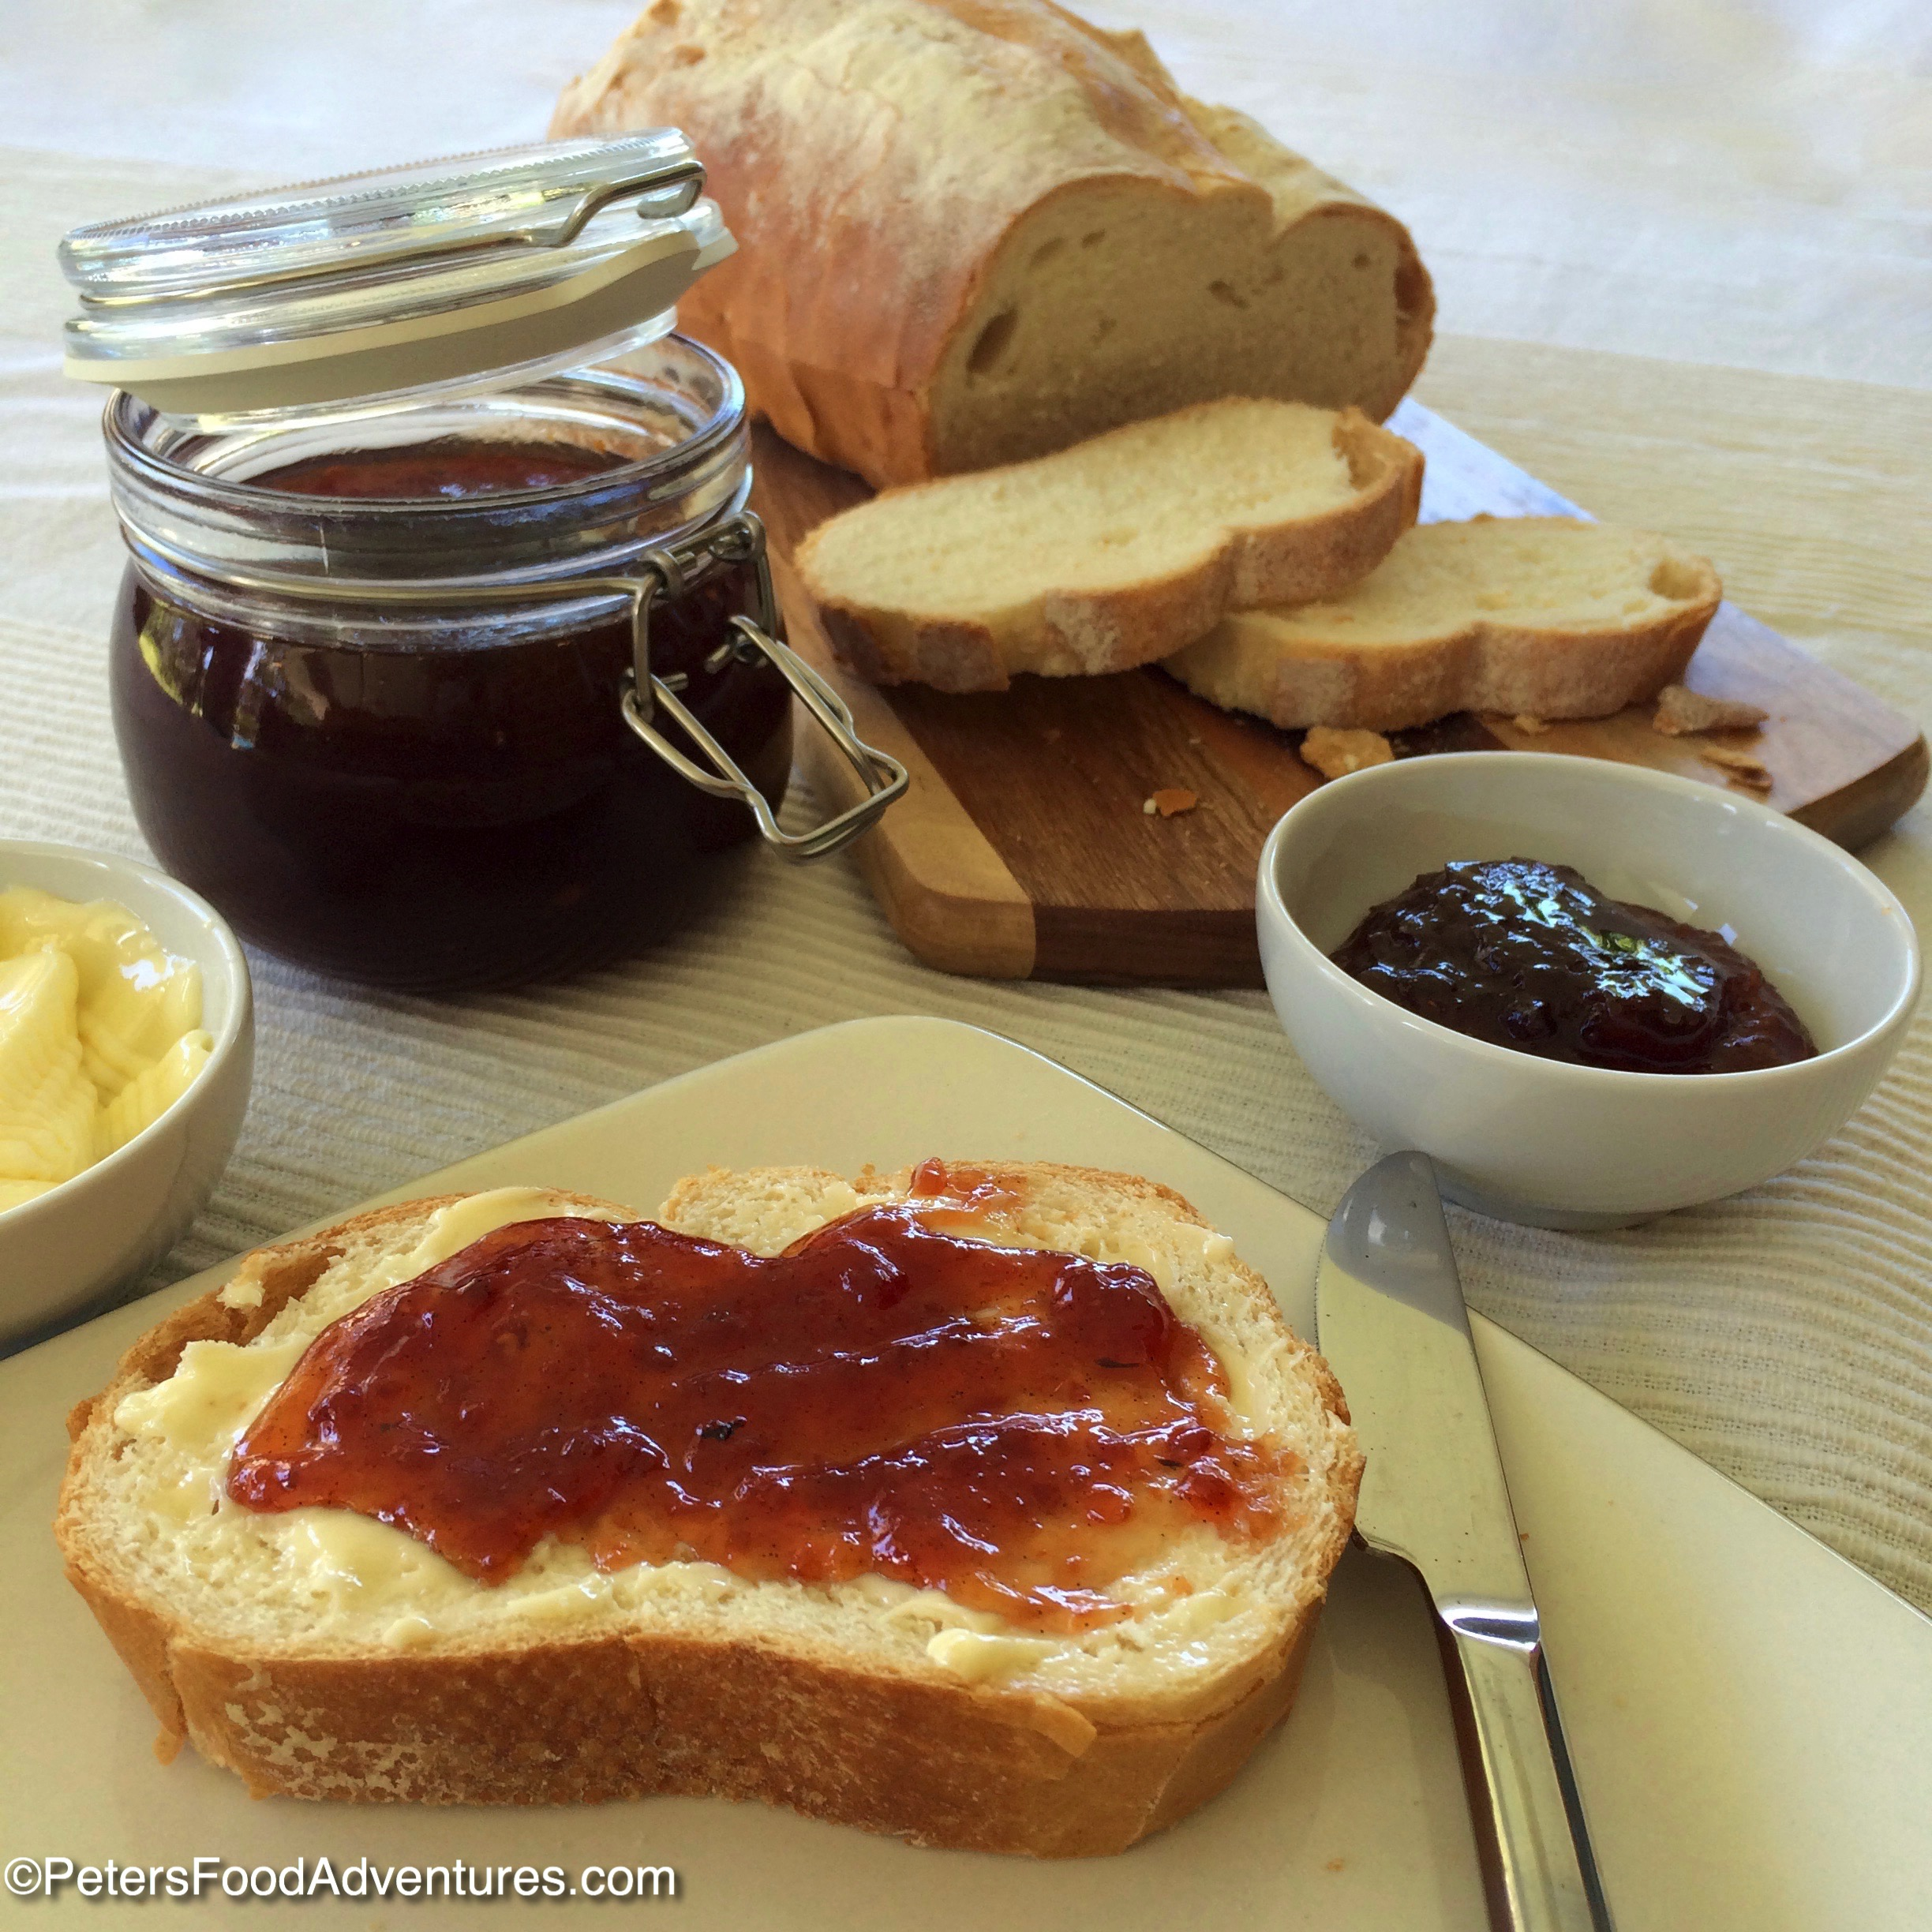 We prepare jam from plum of Hungarian: recipes for all occasions